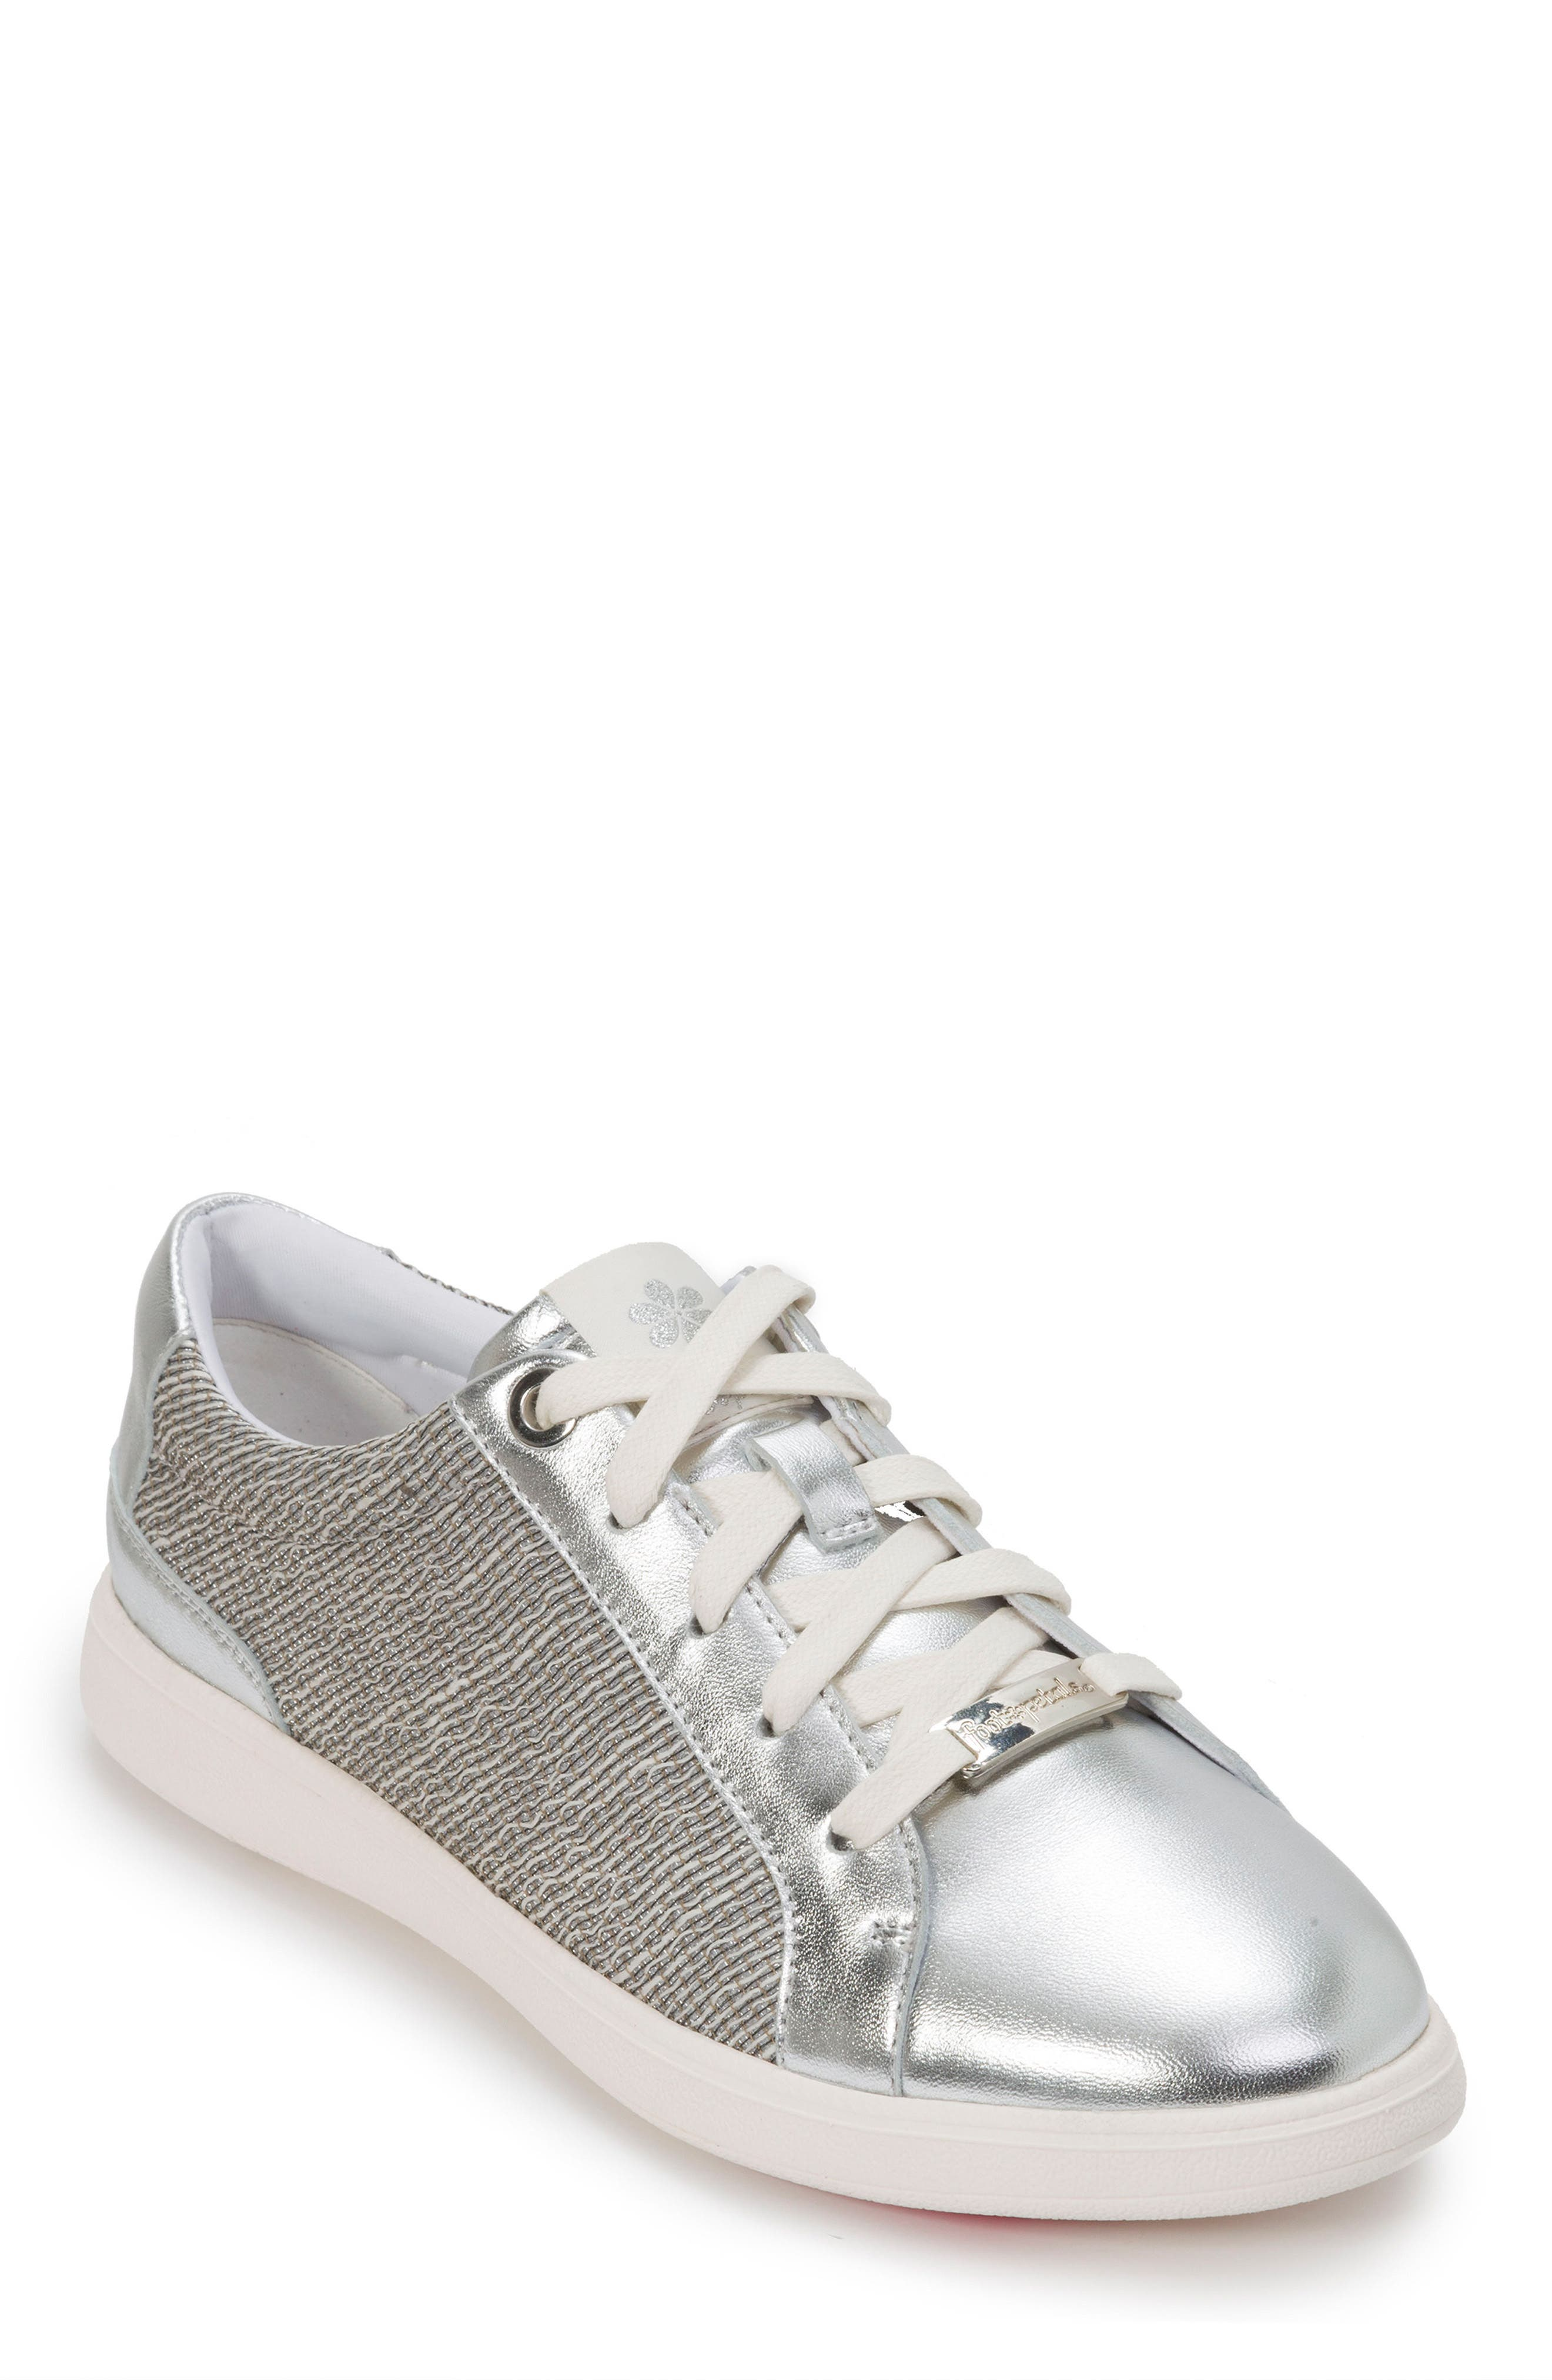 FOOT PETALS Andi Sneaker in Silver Leather